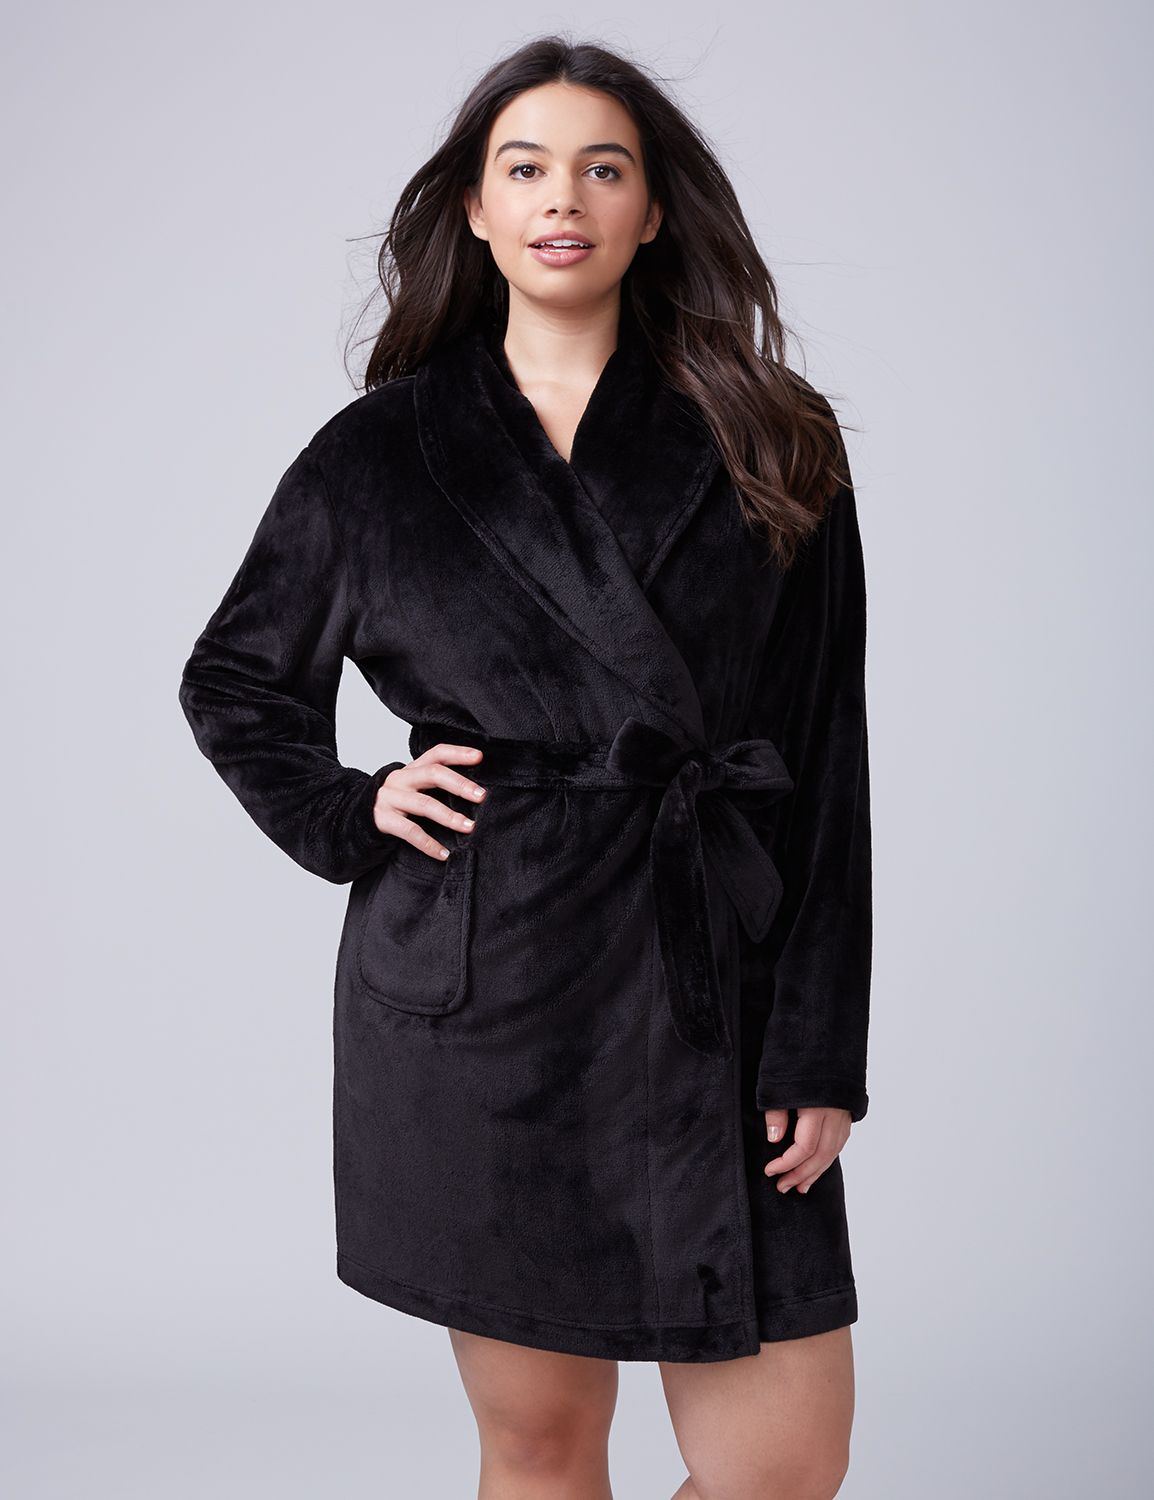 Lane Bryant Womens Plush Robe 14/16 Black